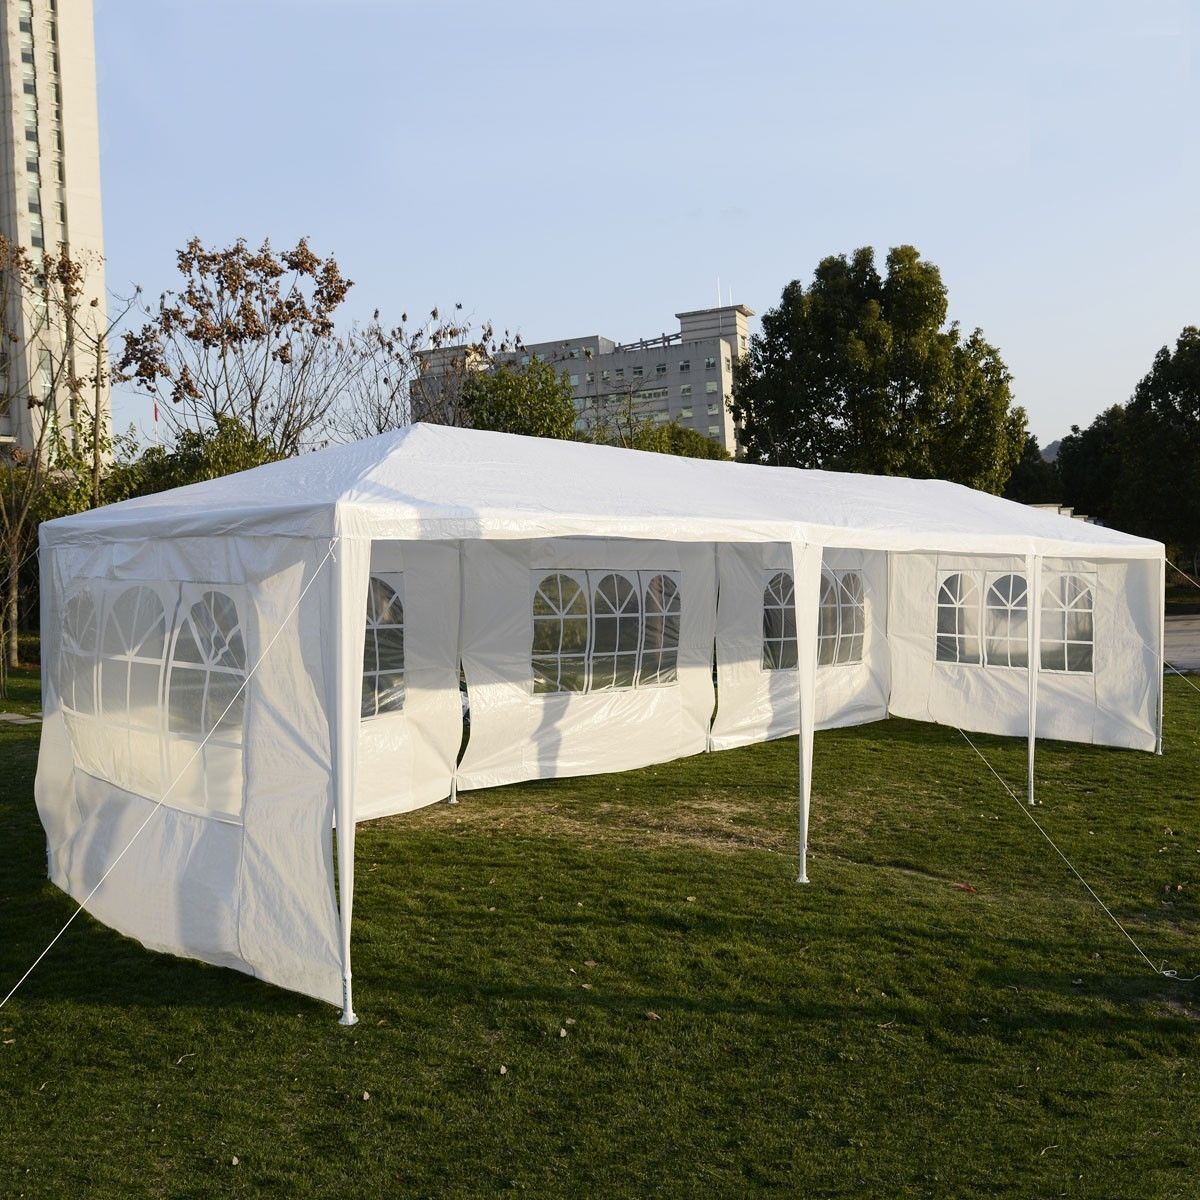 costway party wedding outdoor patio tent canopy heavy duty gazebo pavilion event